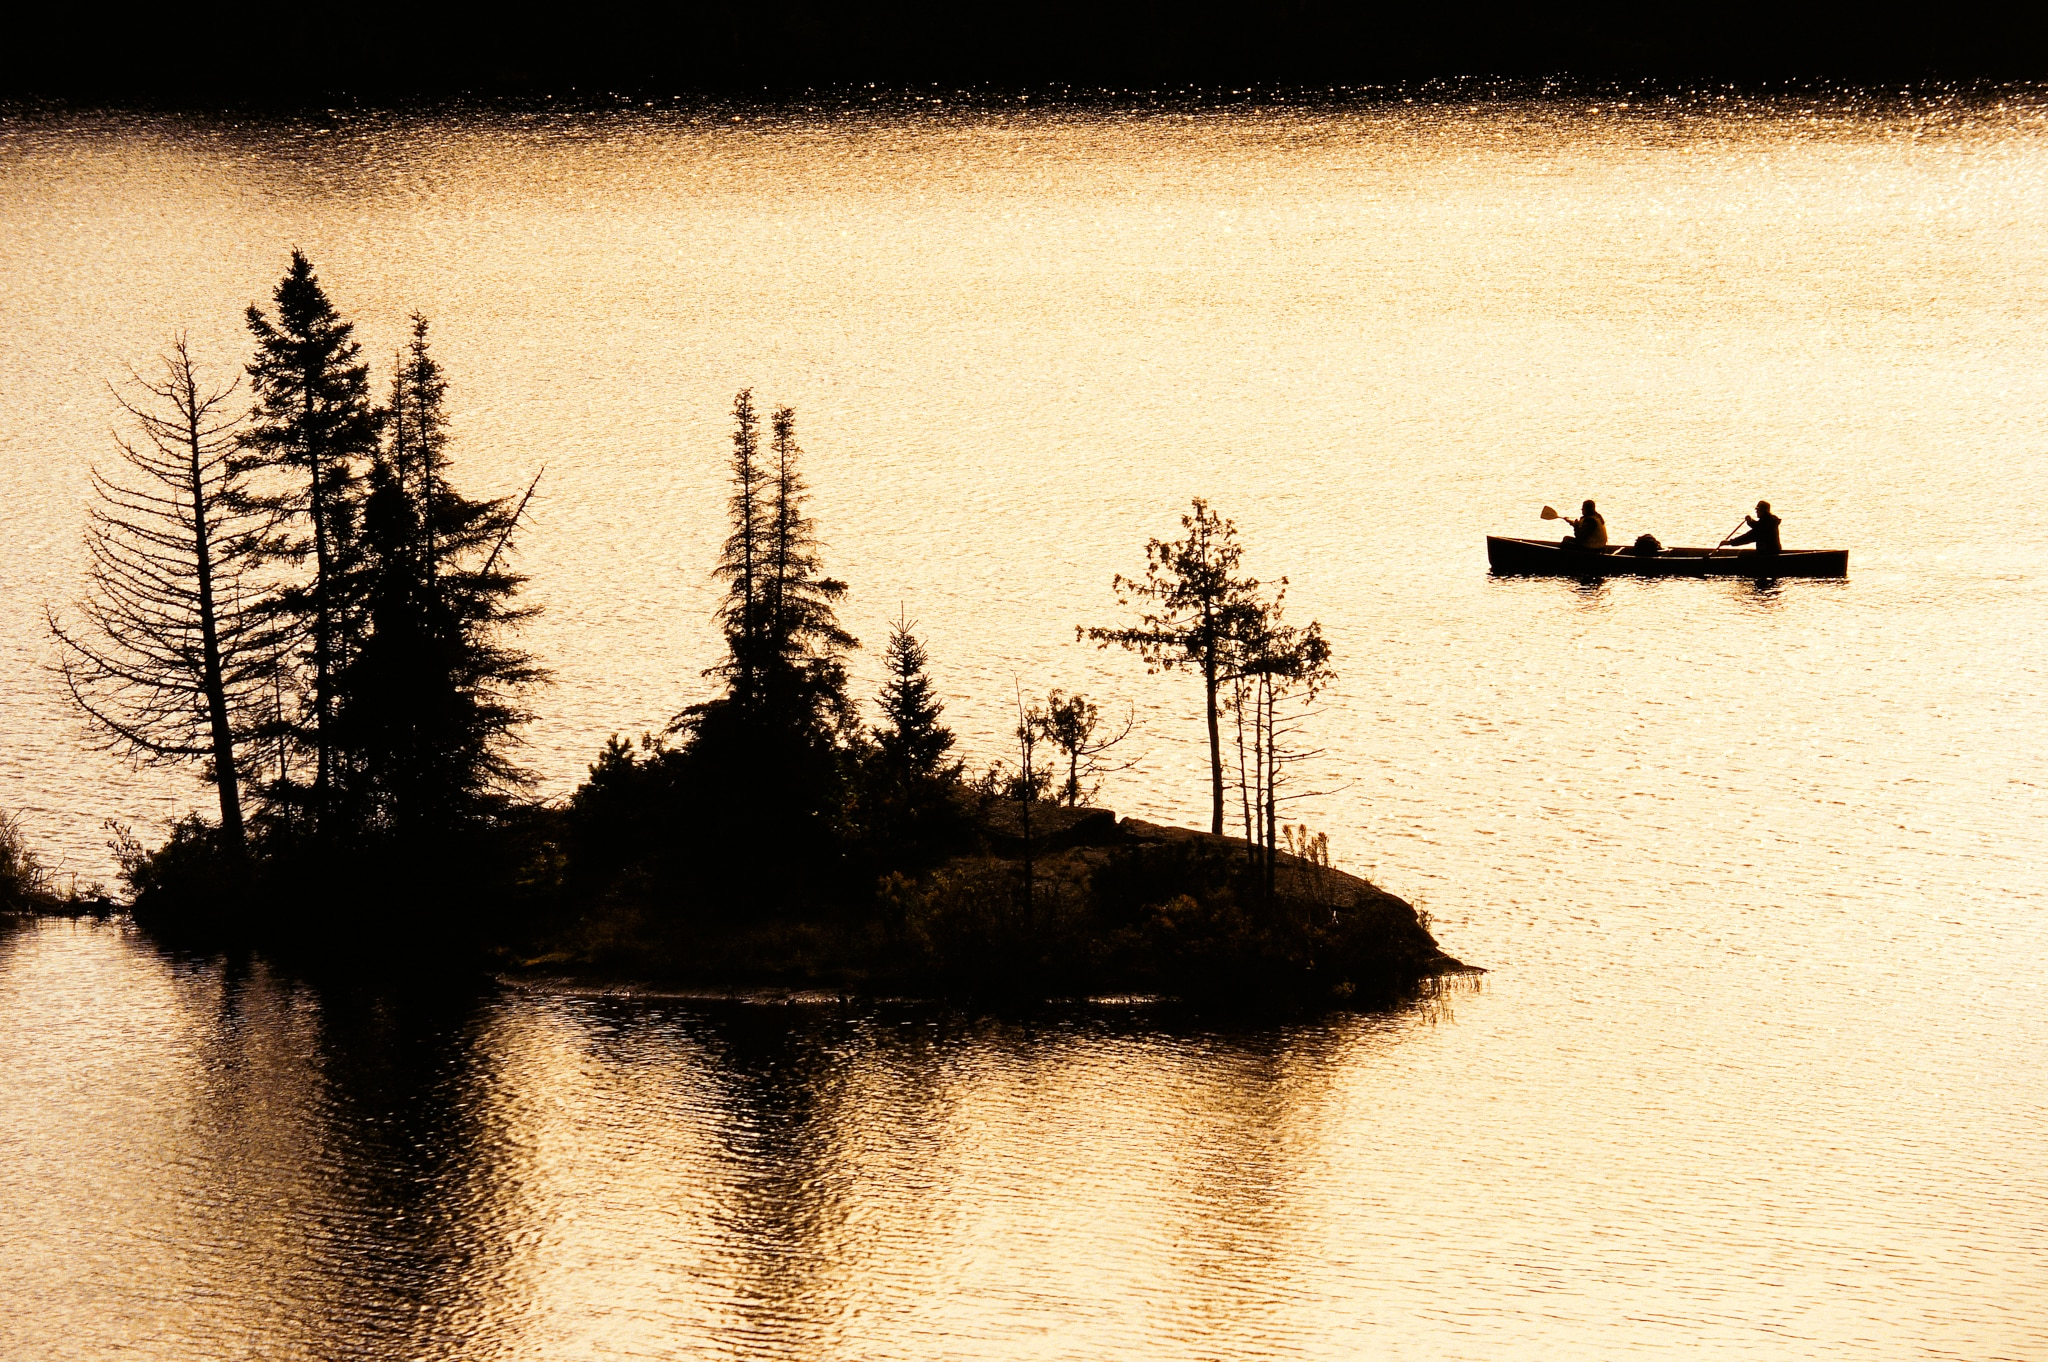 People canoeing on water near small island (© Paul Chesley/National Geographic Creative)